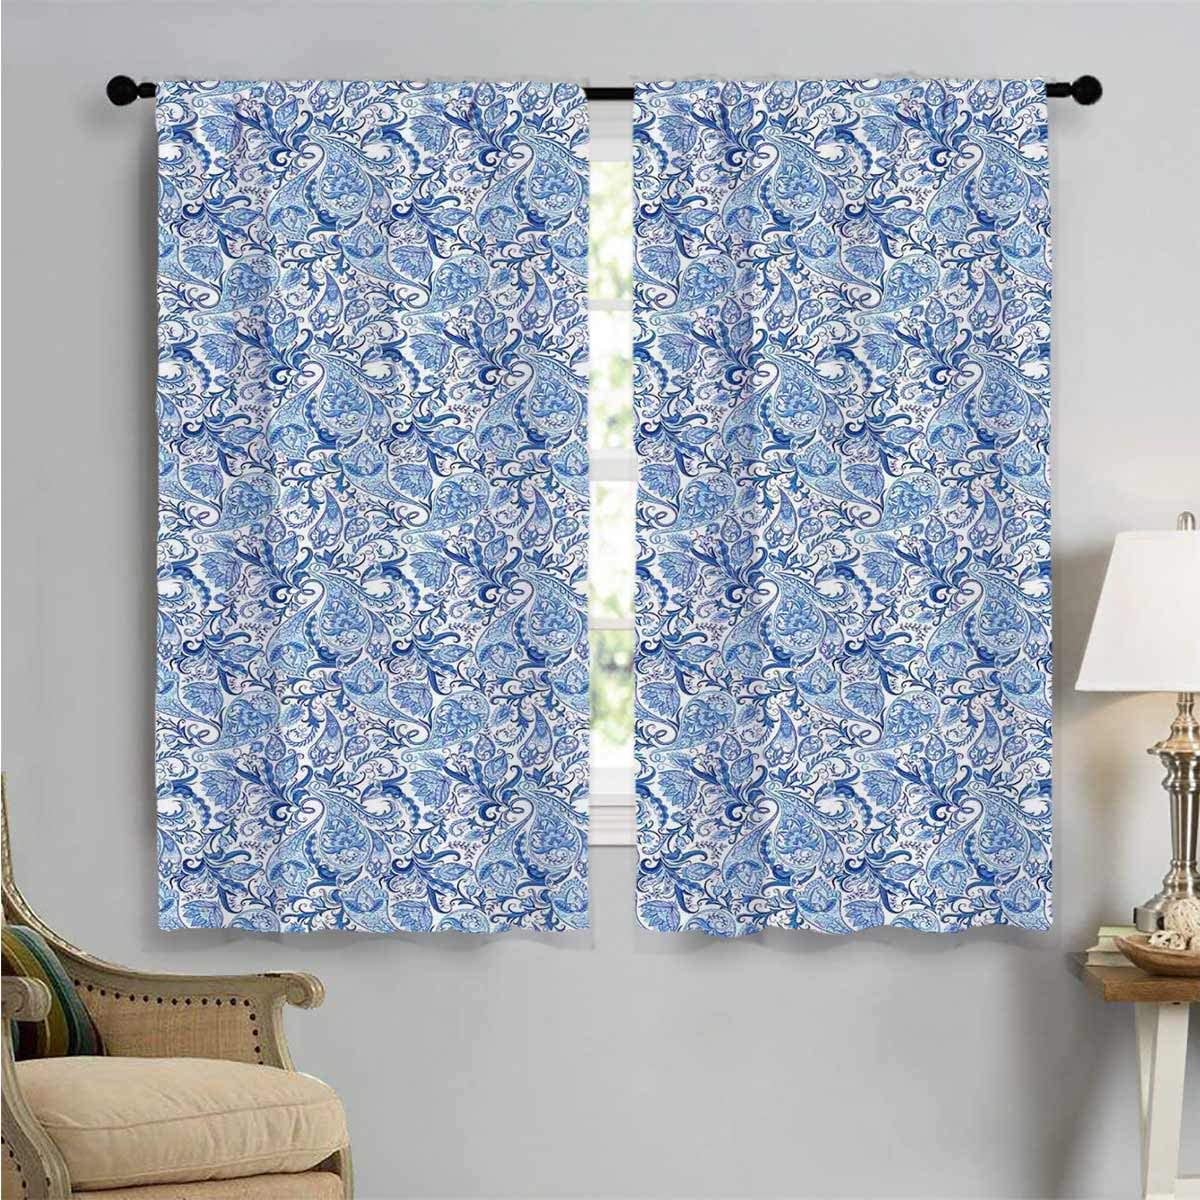 New Shipping Free Import Window Curtain Drape Native Natural Decor W63 L4 x by Curtains